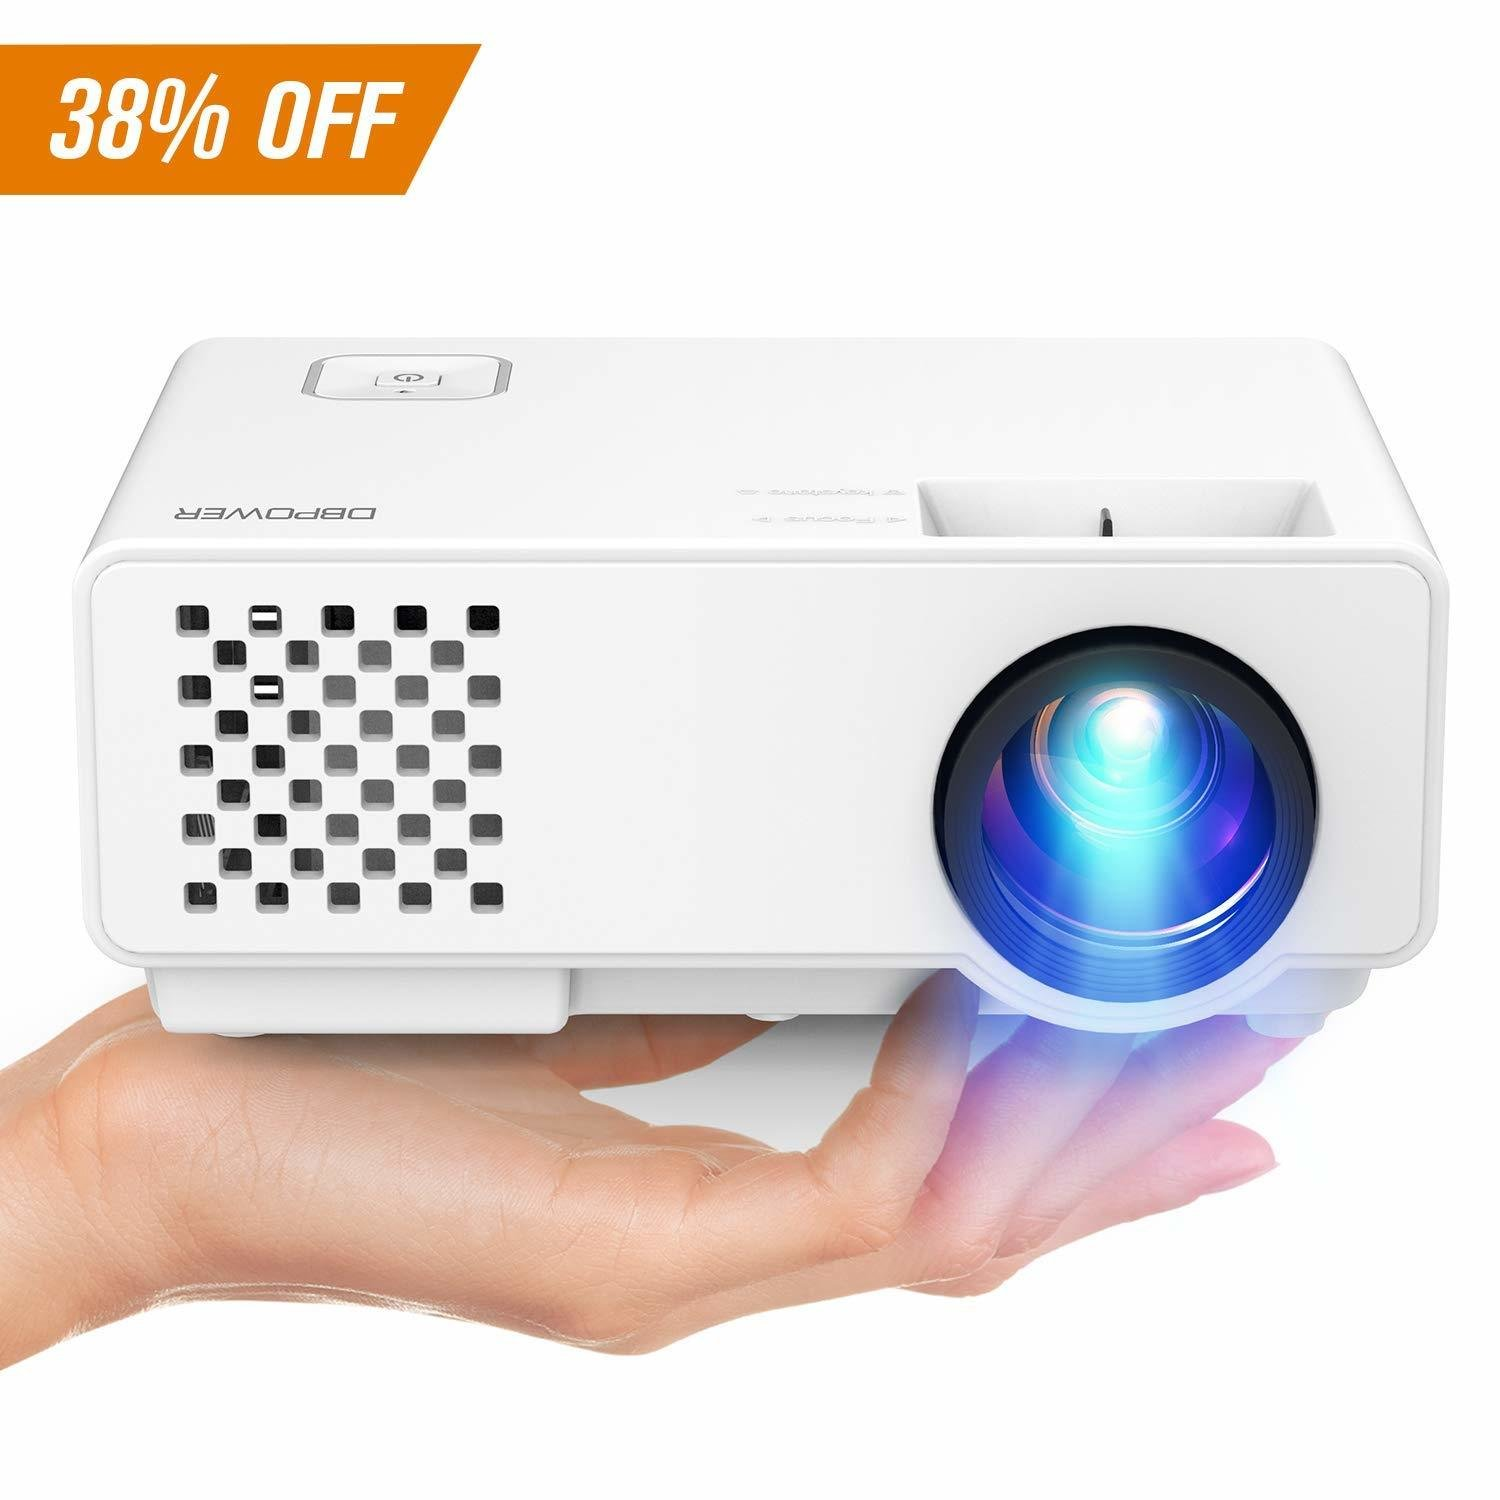 Projector, Upgraded DBPOWER Mini Video Projector, Multimedia Home Theater Video Projector Supporting 1080P, HDMI, USB, VGA, AV Home Cinema, TVs, Laptops, Games, Smartphones